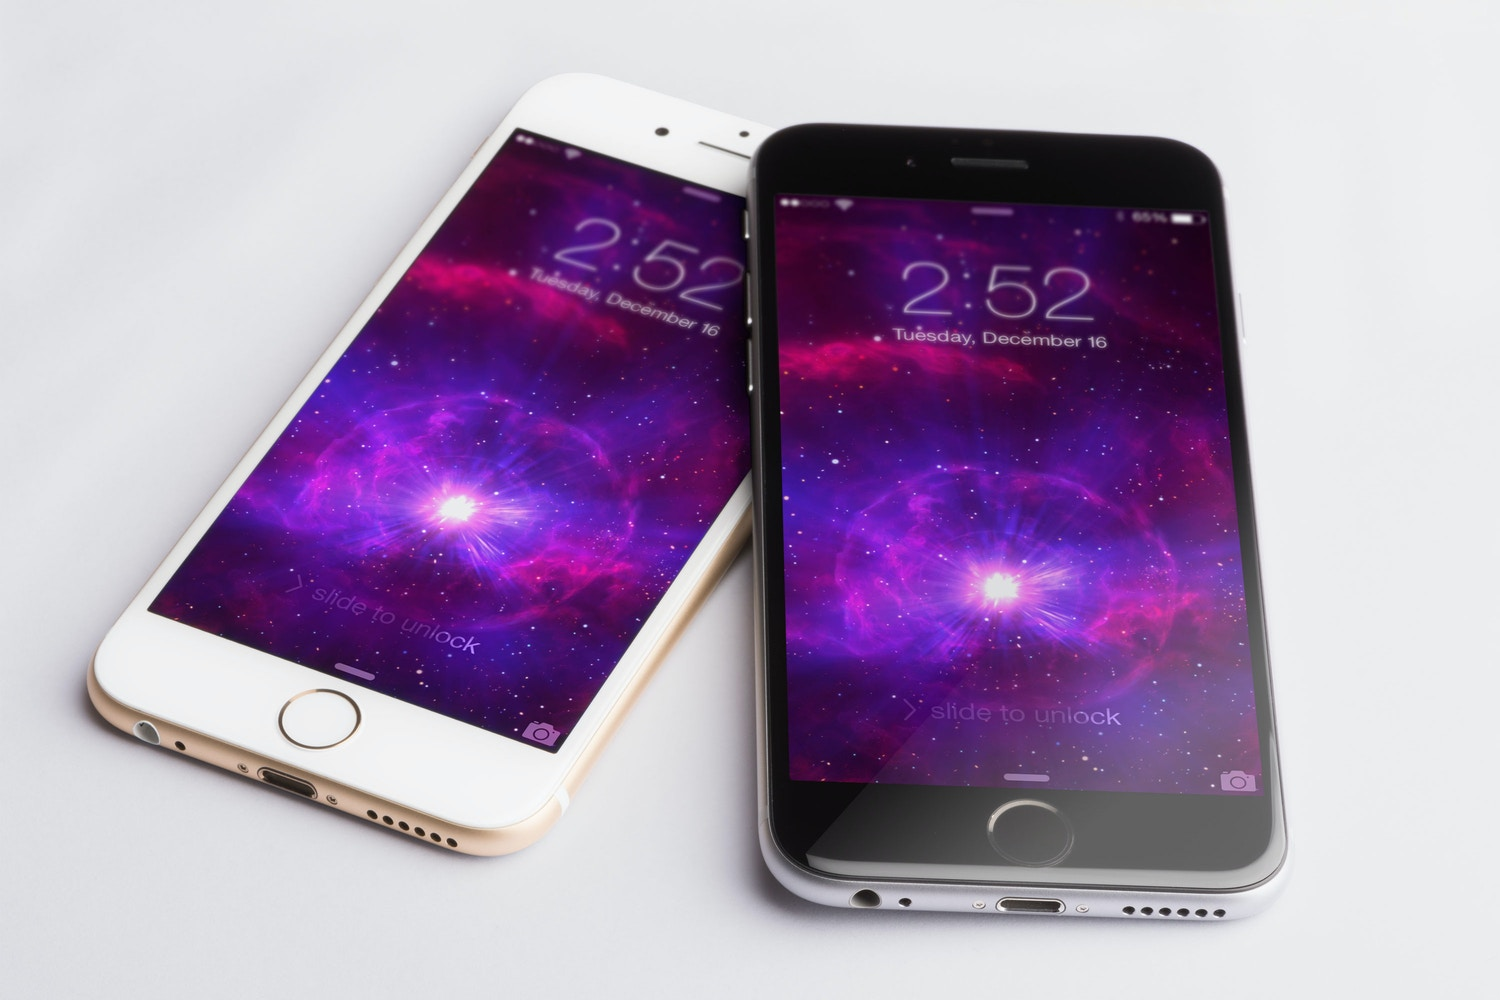 Iphone 6 Gold and Spacegray PSD Mockup 02 by Original Mockups on Original Mockups